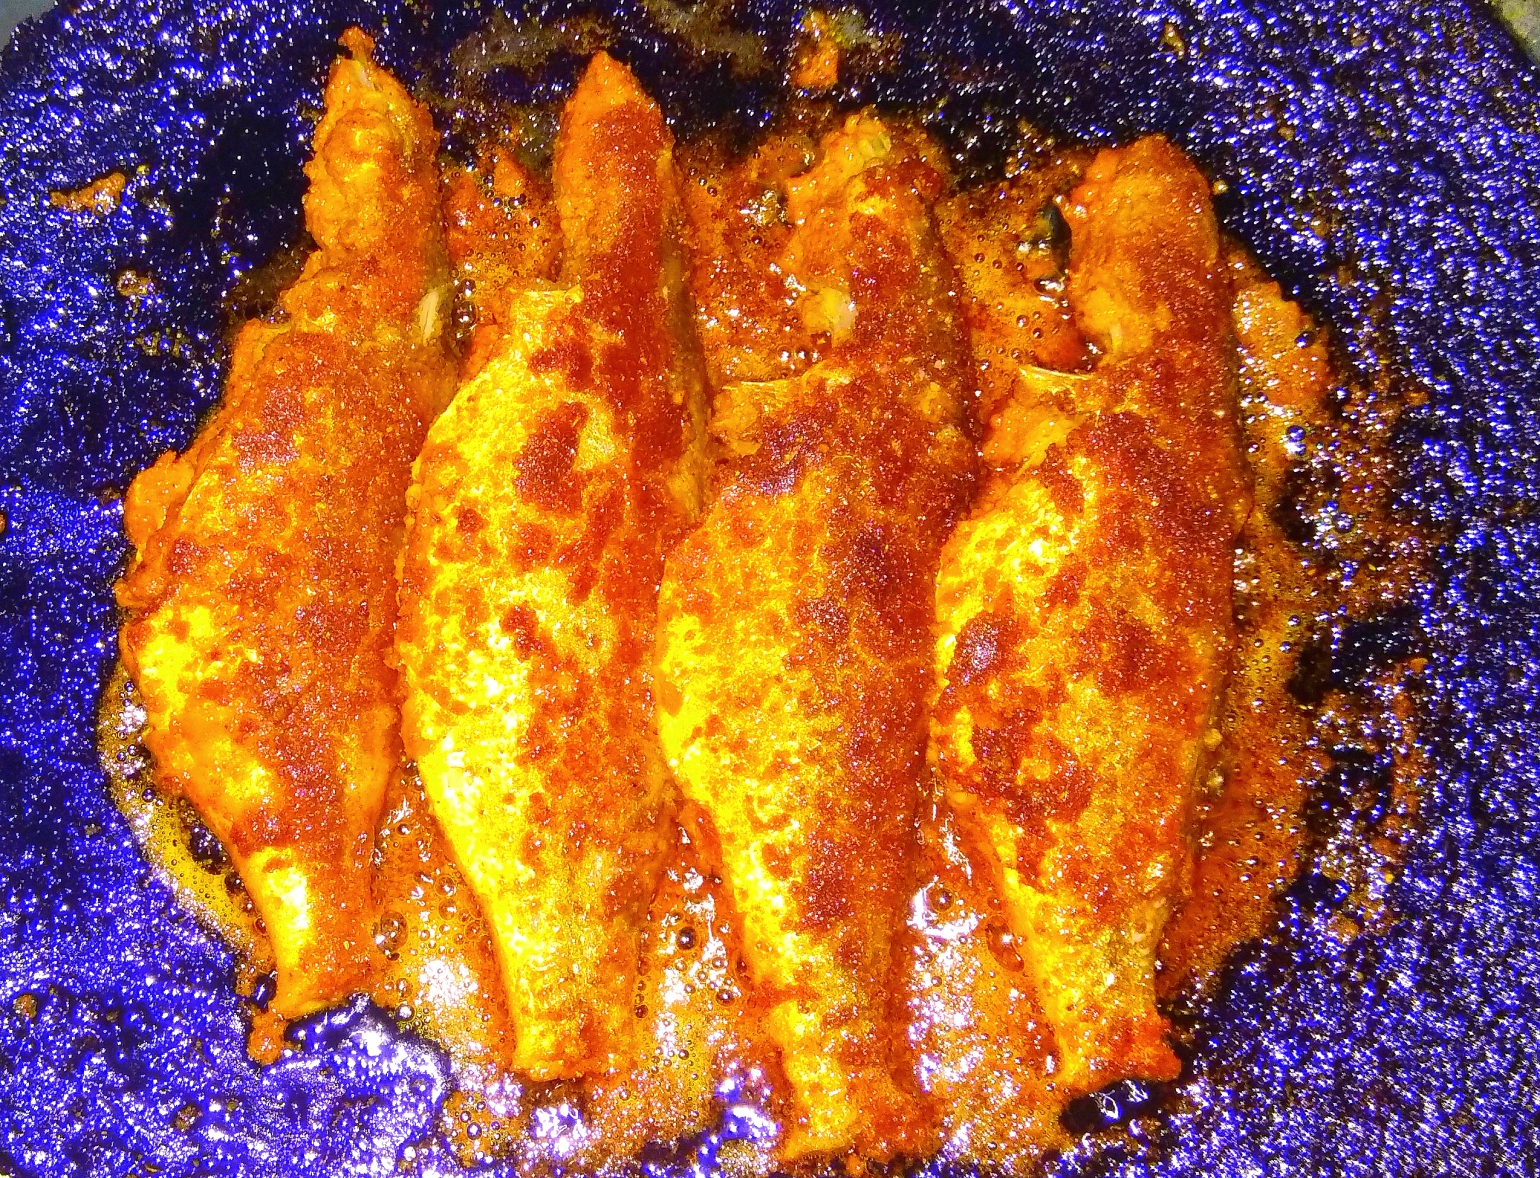 Cook, Eat and Drink - A picture of four fried fish